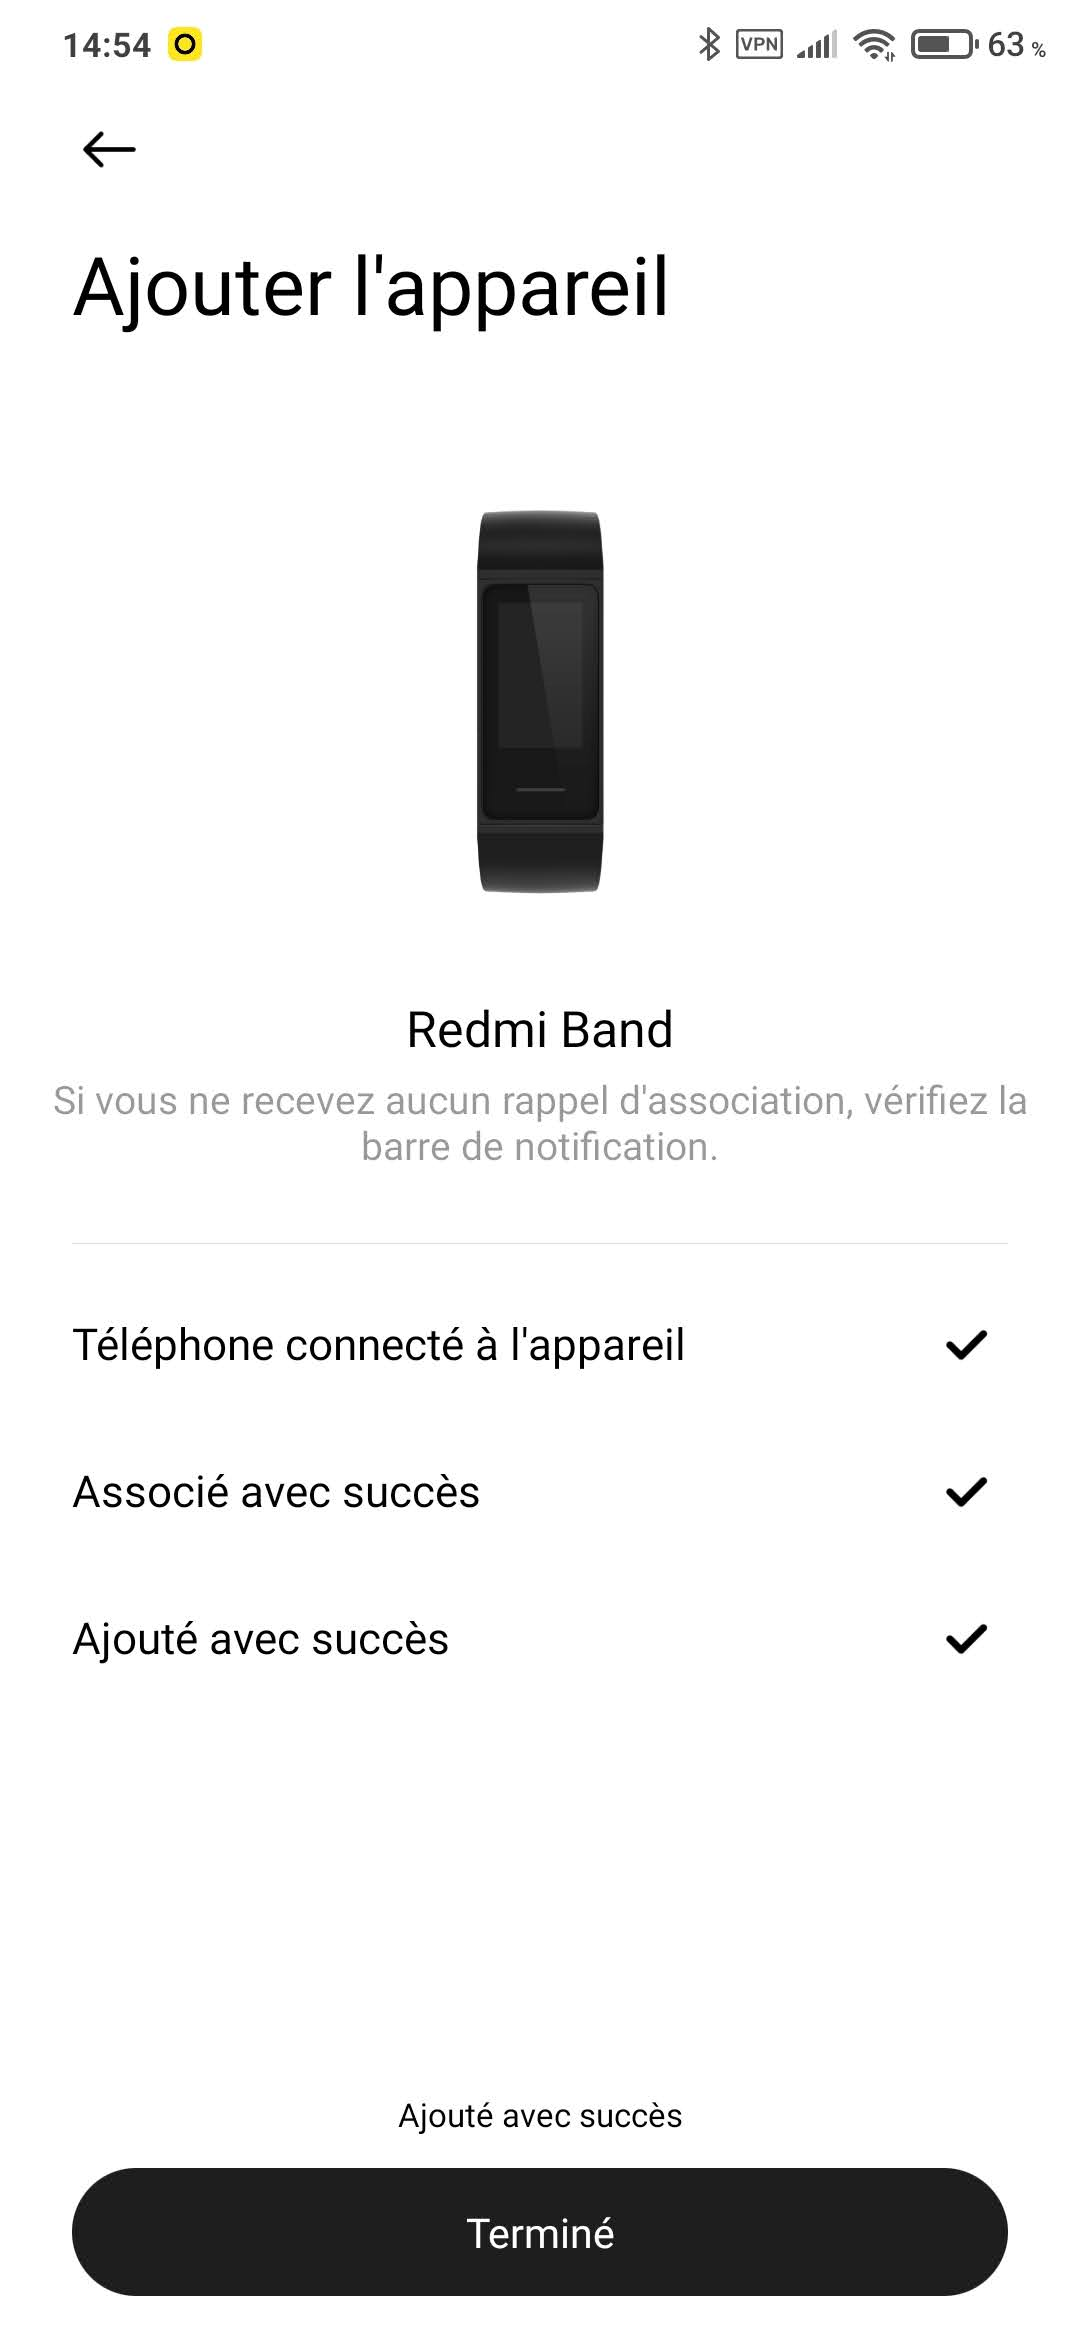 Redmi Band Appaire